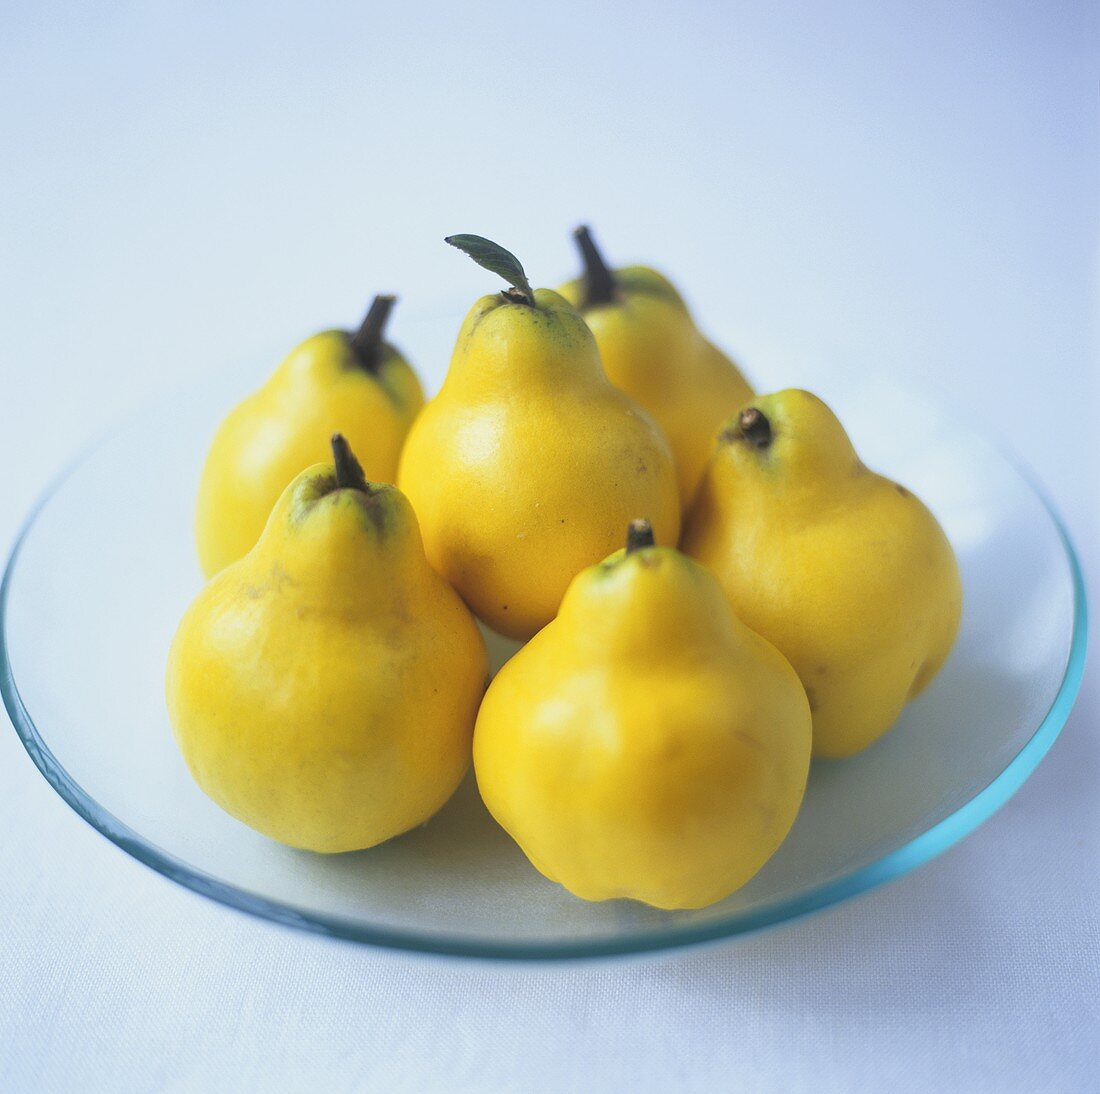 Pear-shaped quinces on a glass plate